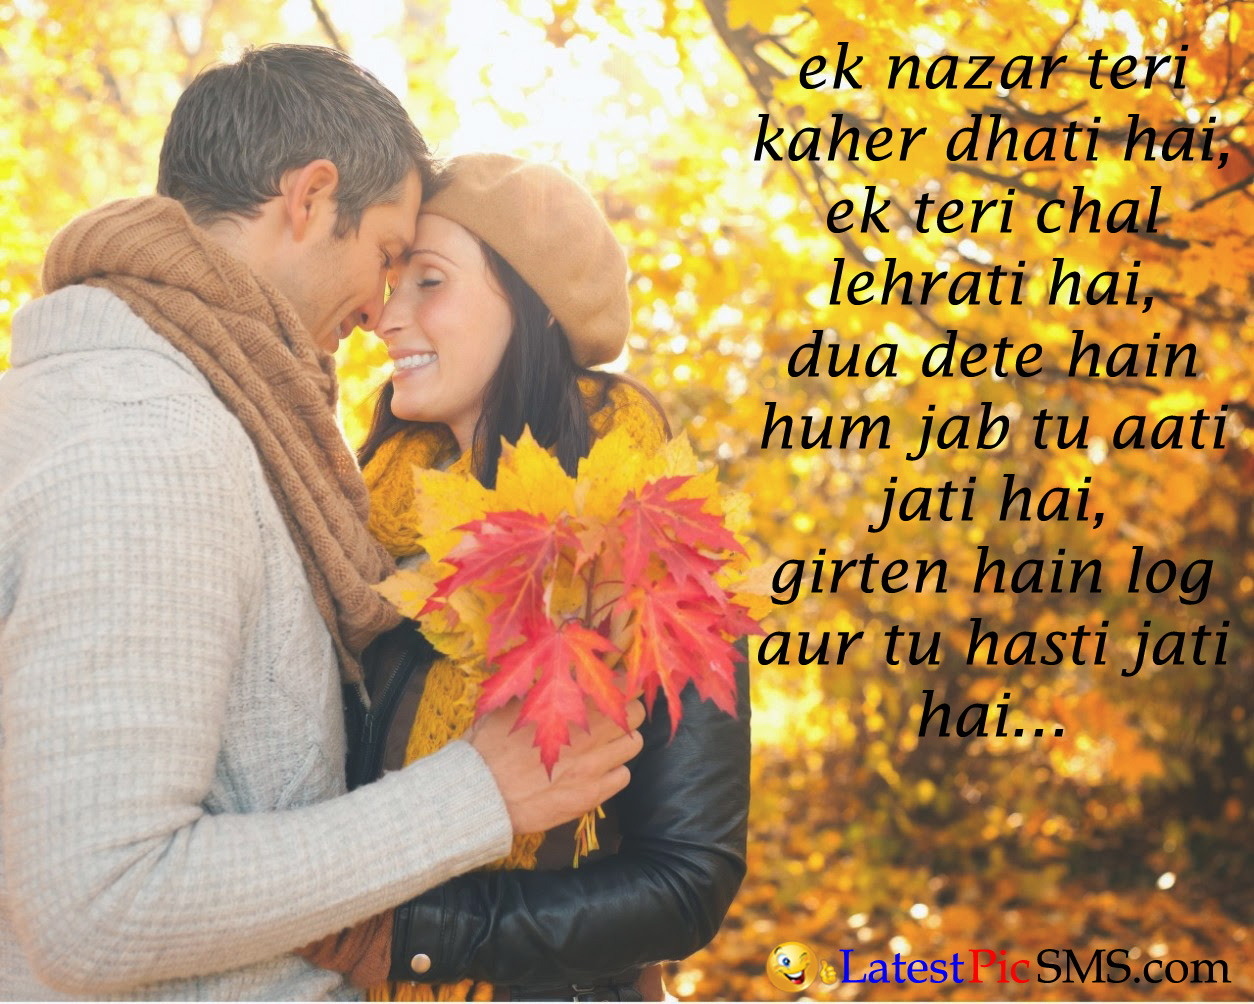 sweet%2Bshayari%2Bwallpaper - Best Love Shayari with Photo Quotes for Whatsapp & Facebook